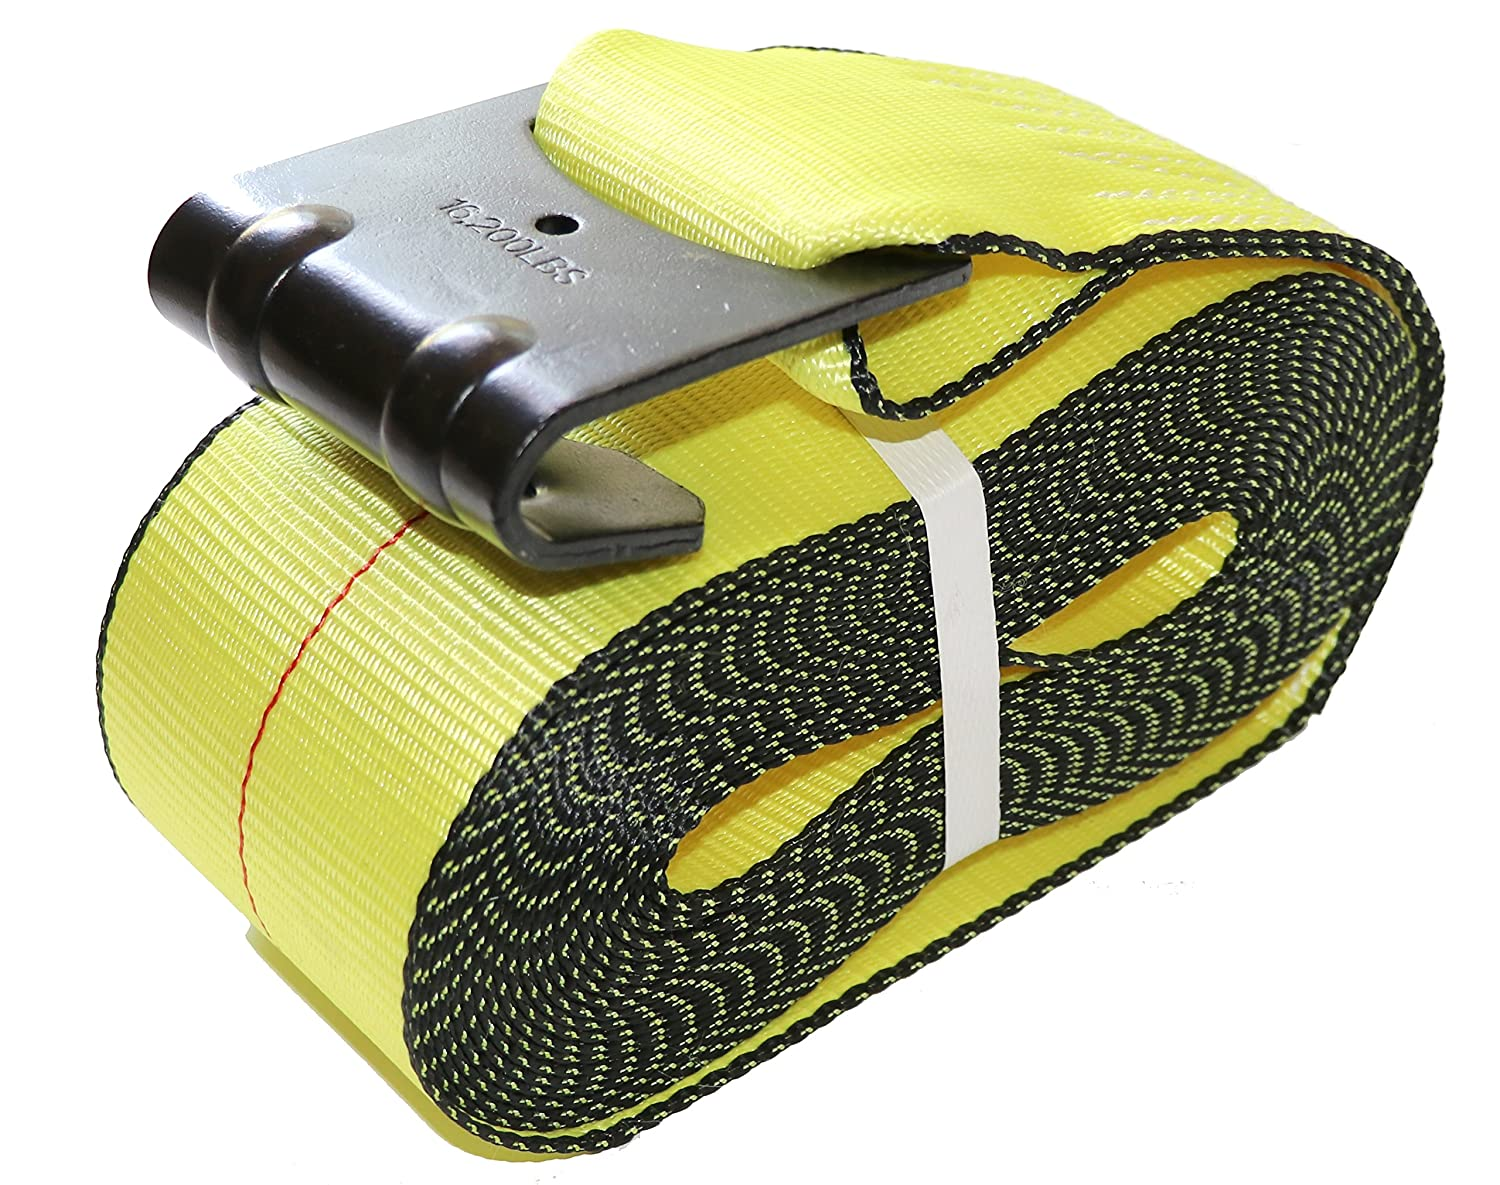 4' x 30' DKG Cargo Winch Strap with Flat Hook - Ideal Flatbed Truck Tie Down (1 Pack) DK Global